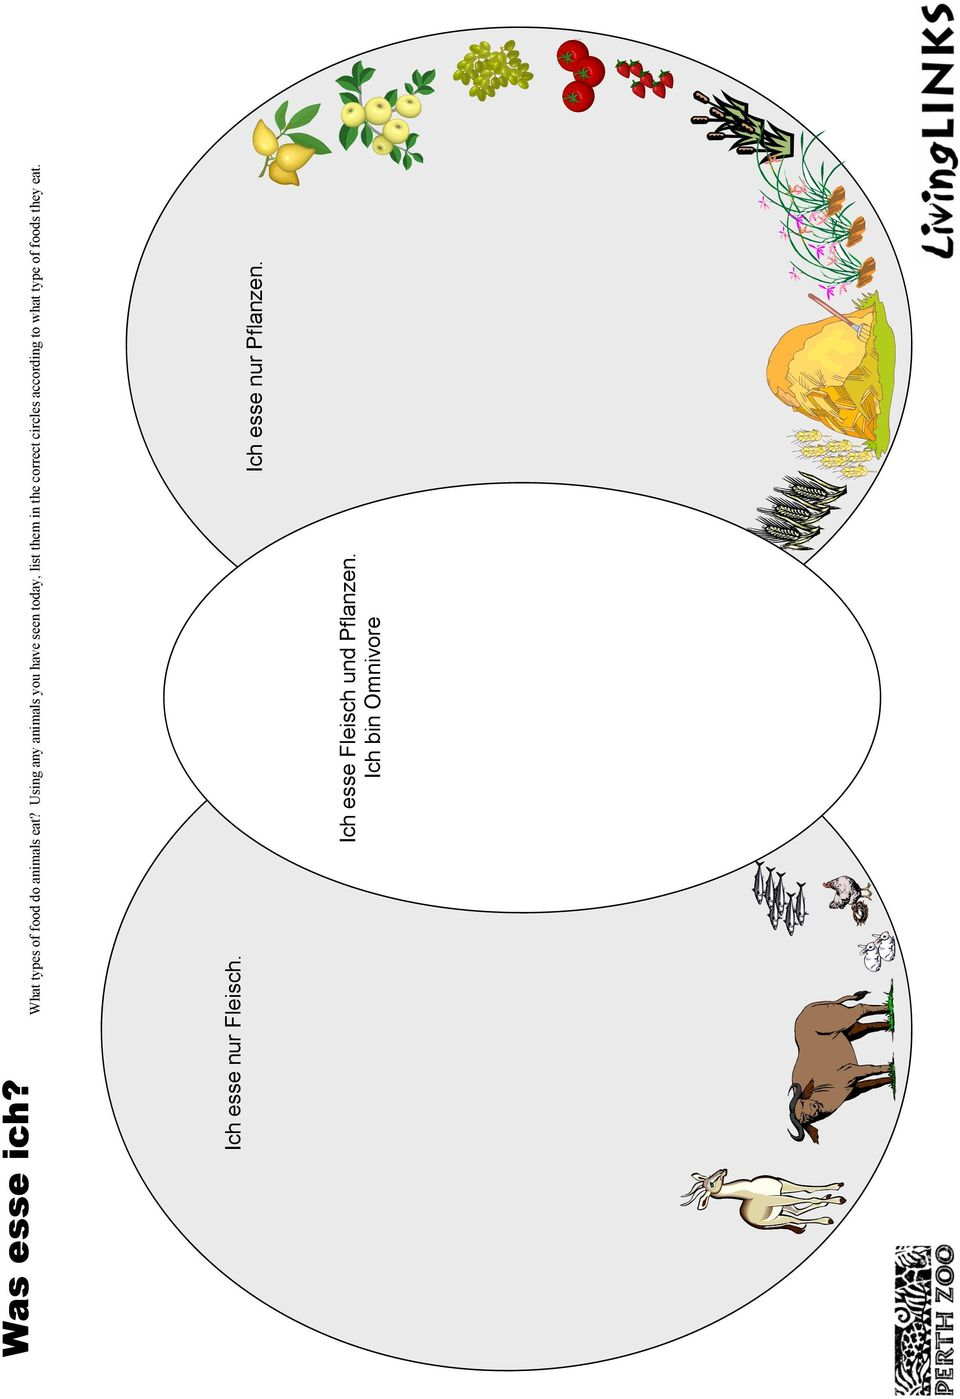 circles according to what type of foods they eat.